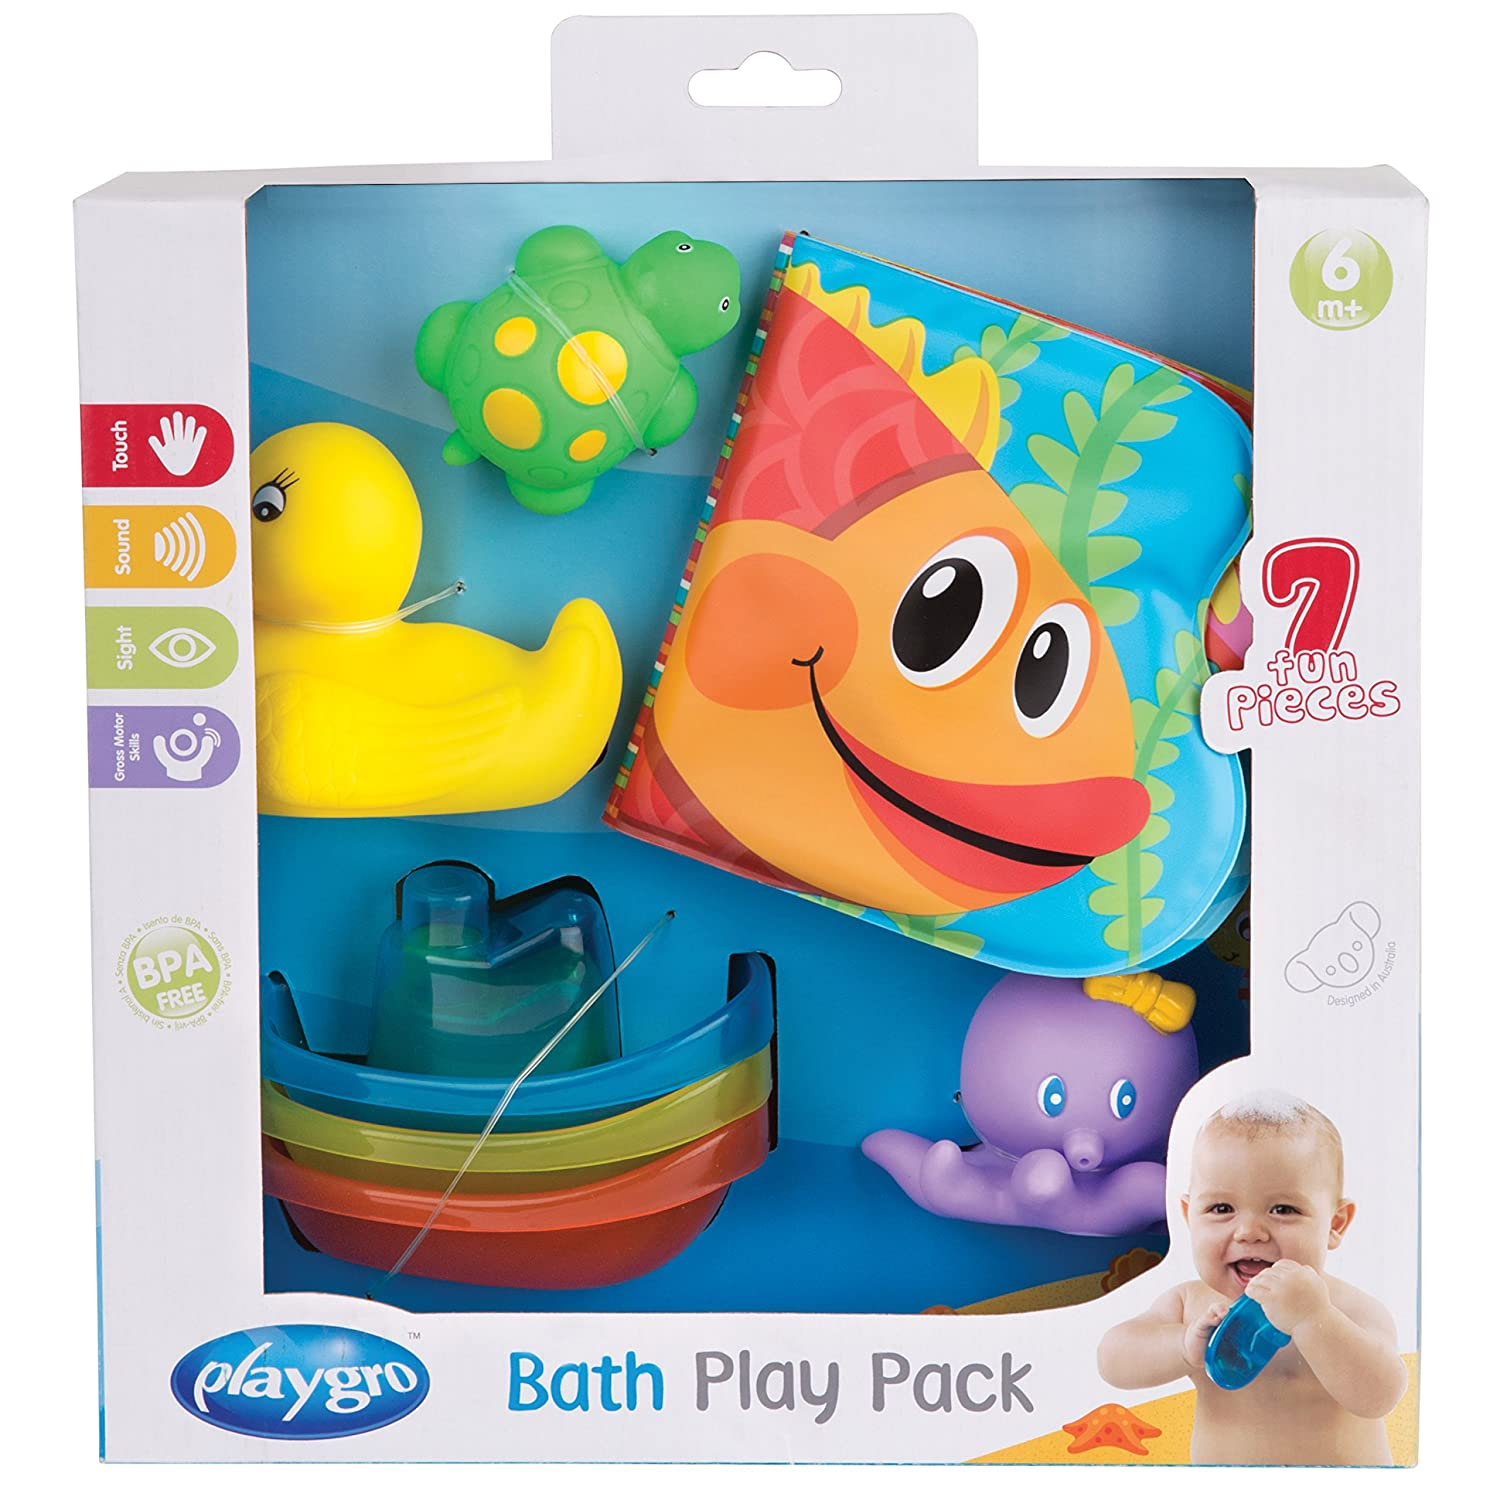 Playgro Bath Play Gift Pack 0185257